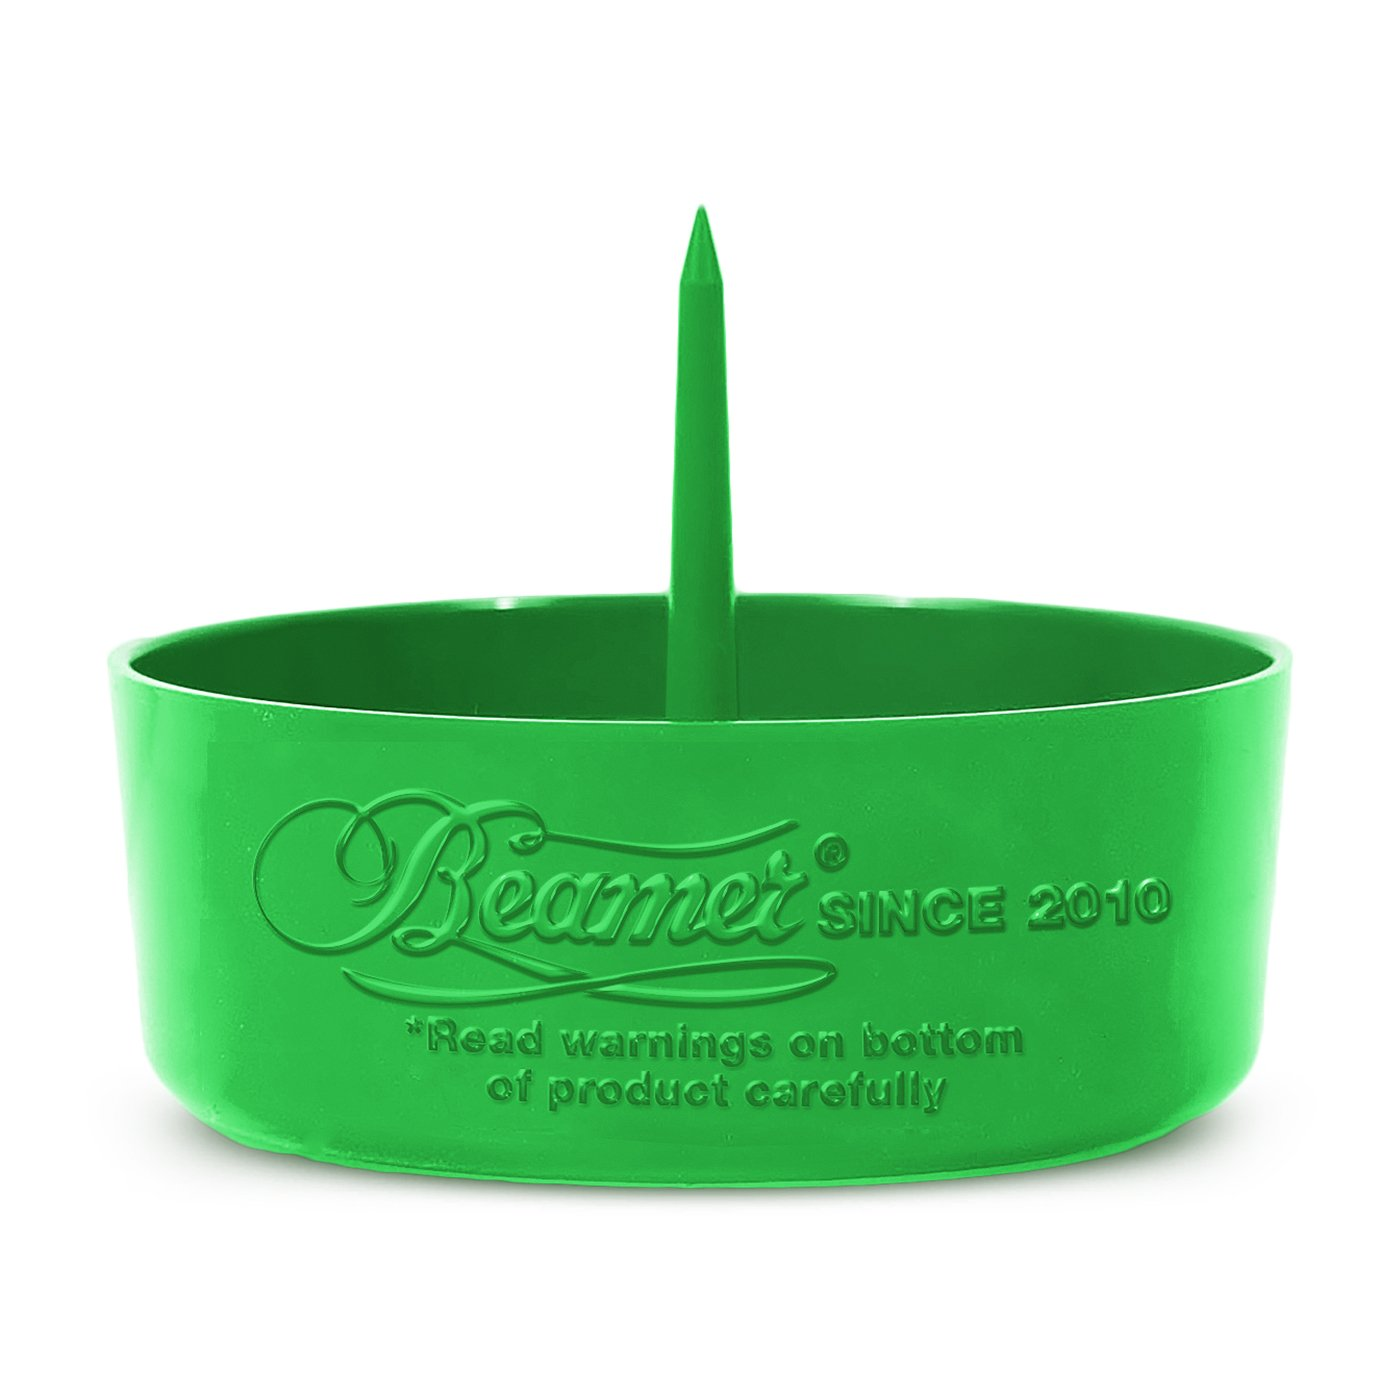 Beamer DePiper Green Ashtray with Built in Cleaning Poker Spike Tool to Clean out Pipes and Bowls Quickly and Mess Free and Beamer Smoke Sticker